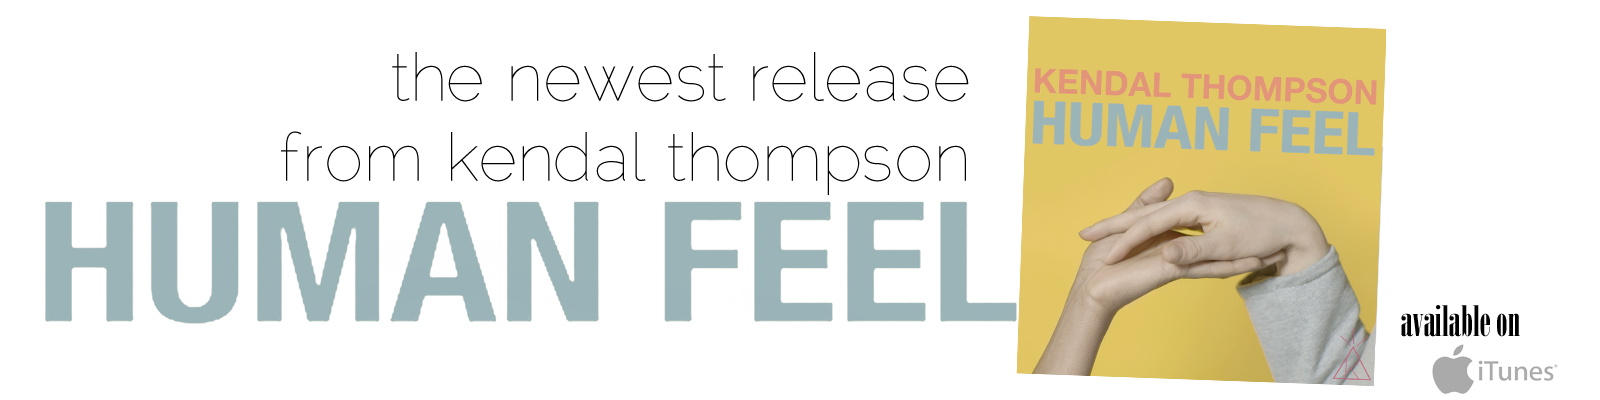 HumanFeelbanner.png